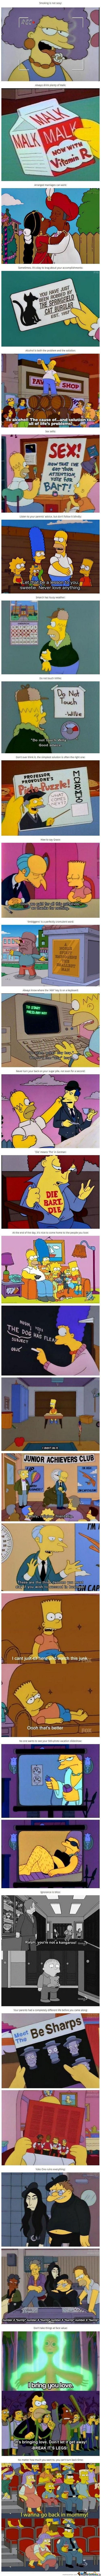 Some Funny Stuff The Simpsons Have Taught Me